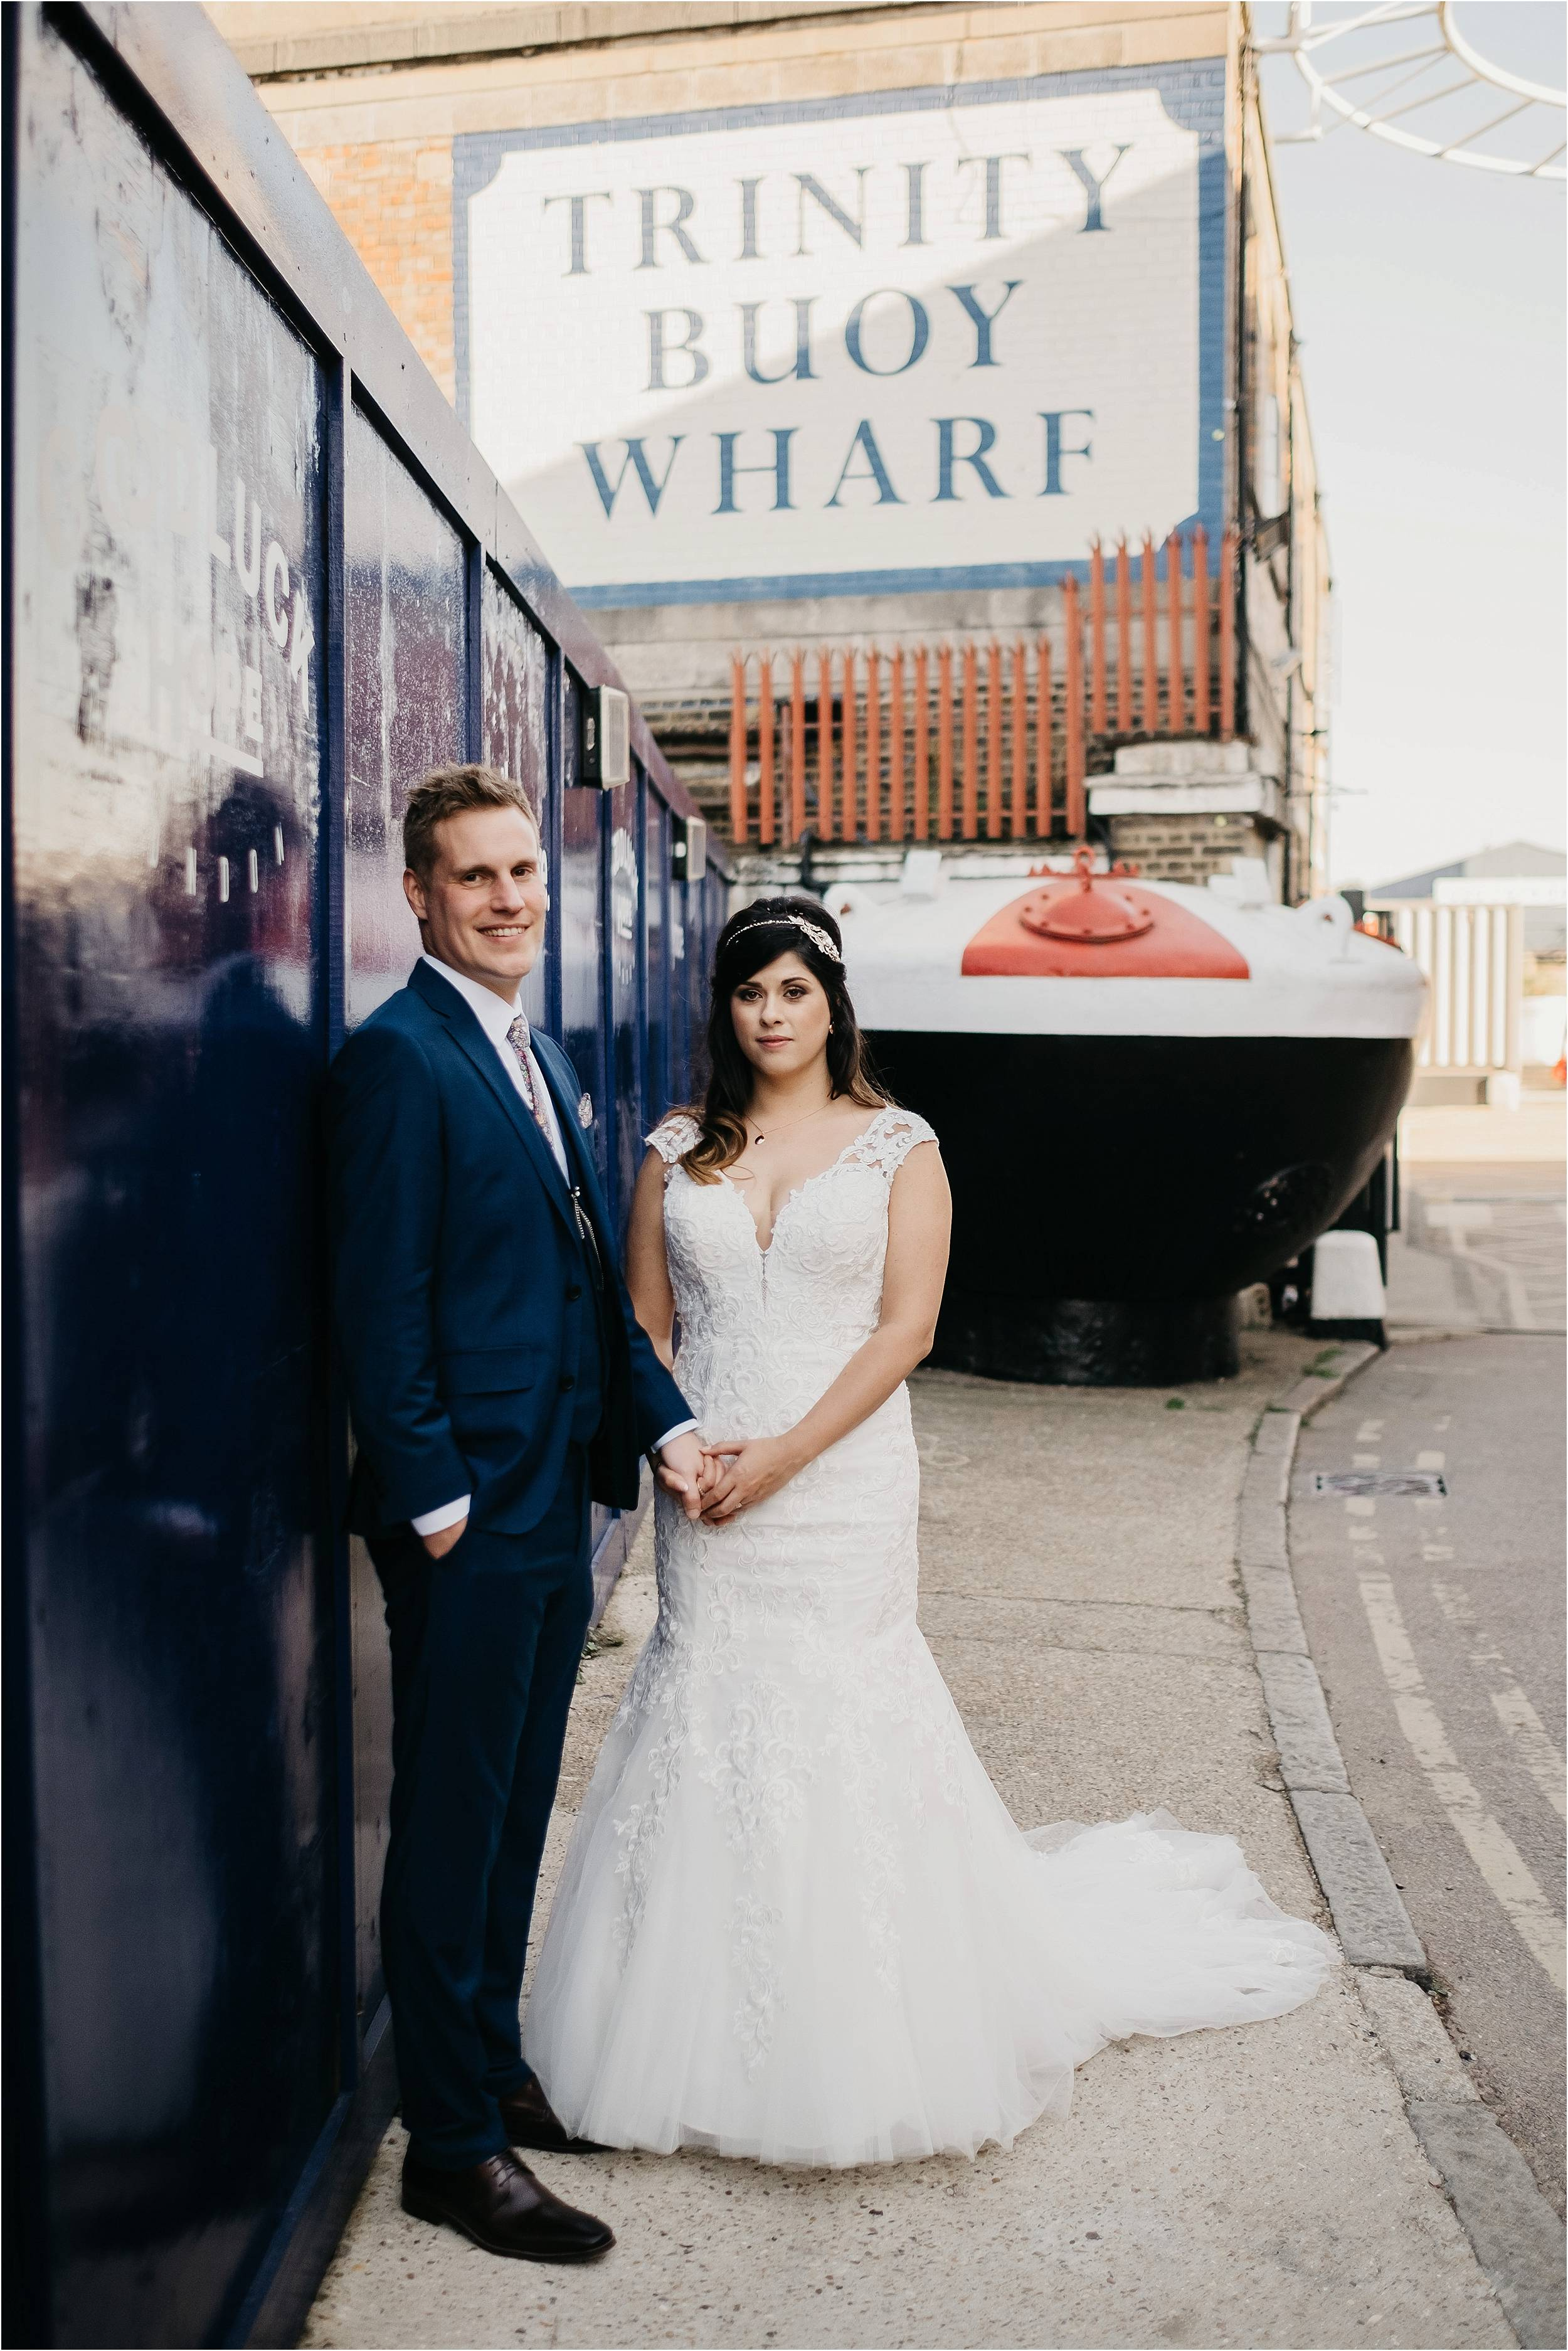 Trinity Buoy Wharf Wedding Photography_0078.jpg